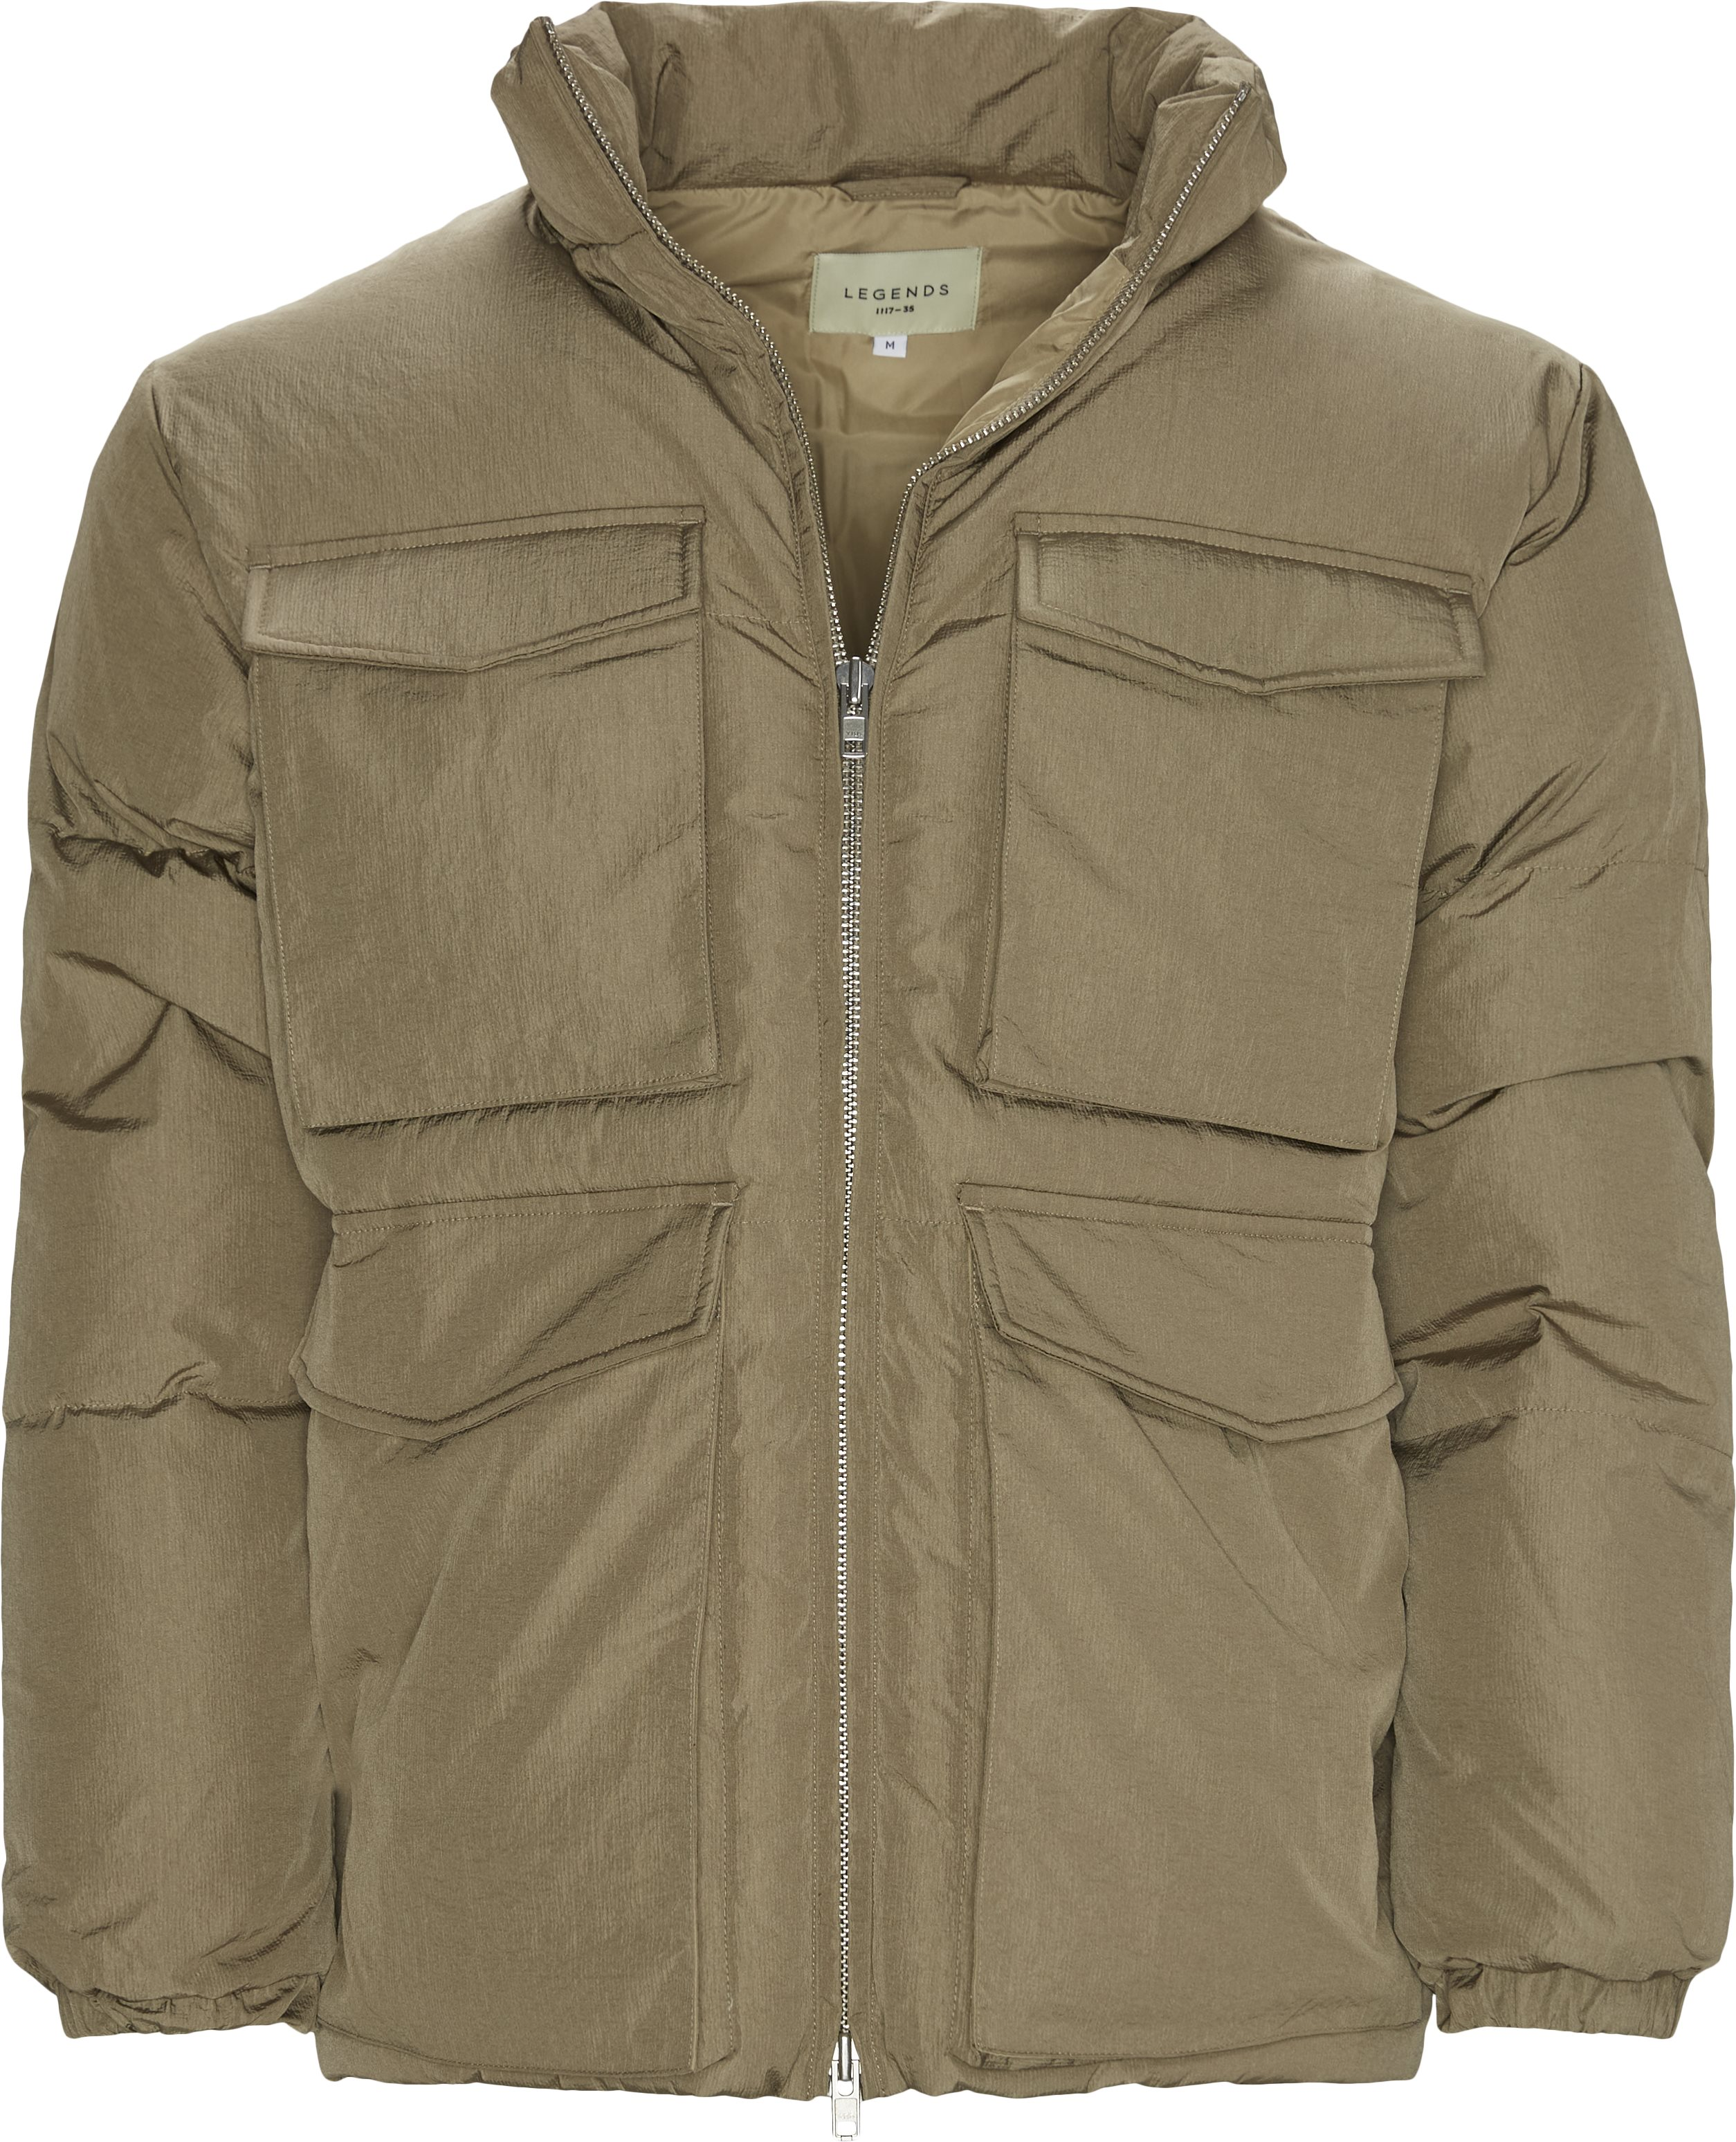 Laudo Puffer Jacket - Jackets - Regular - Sand